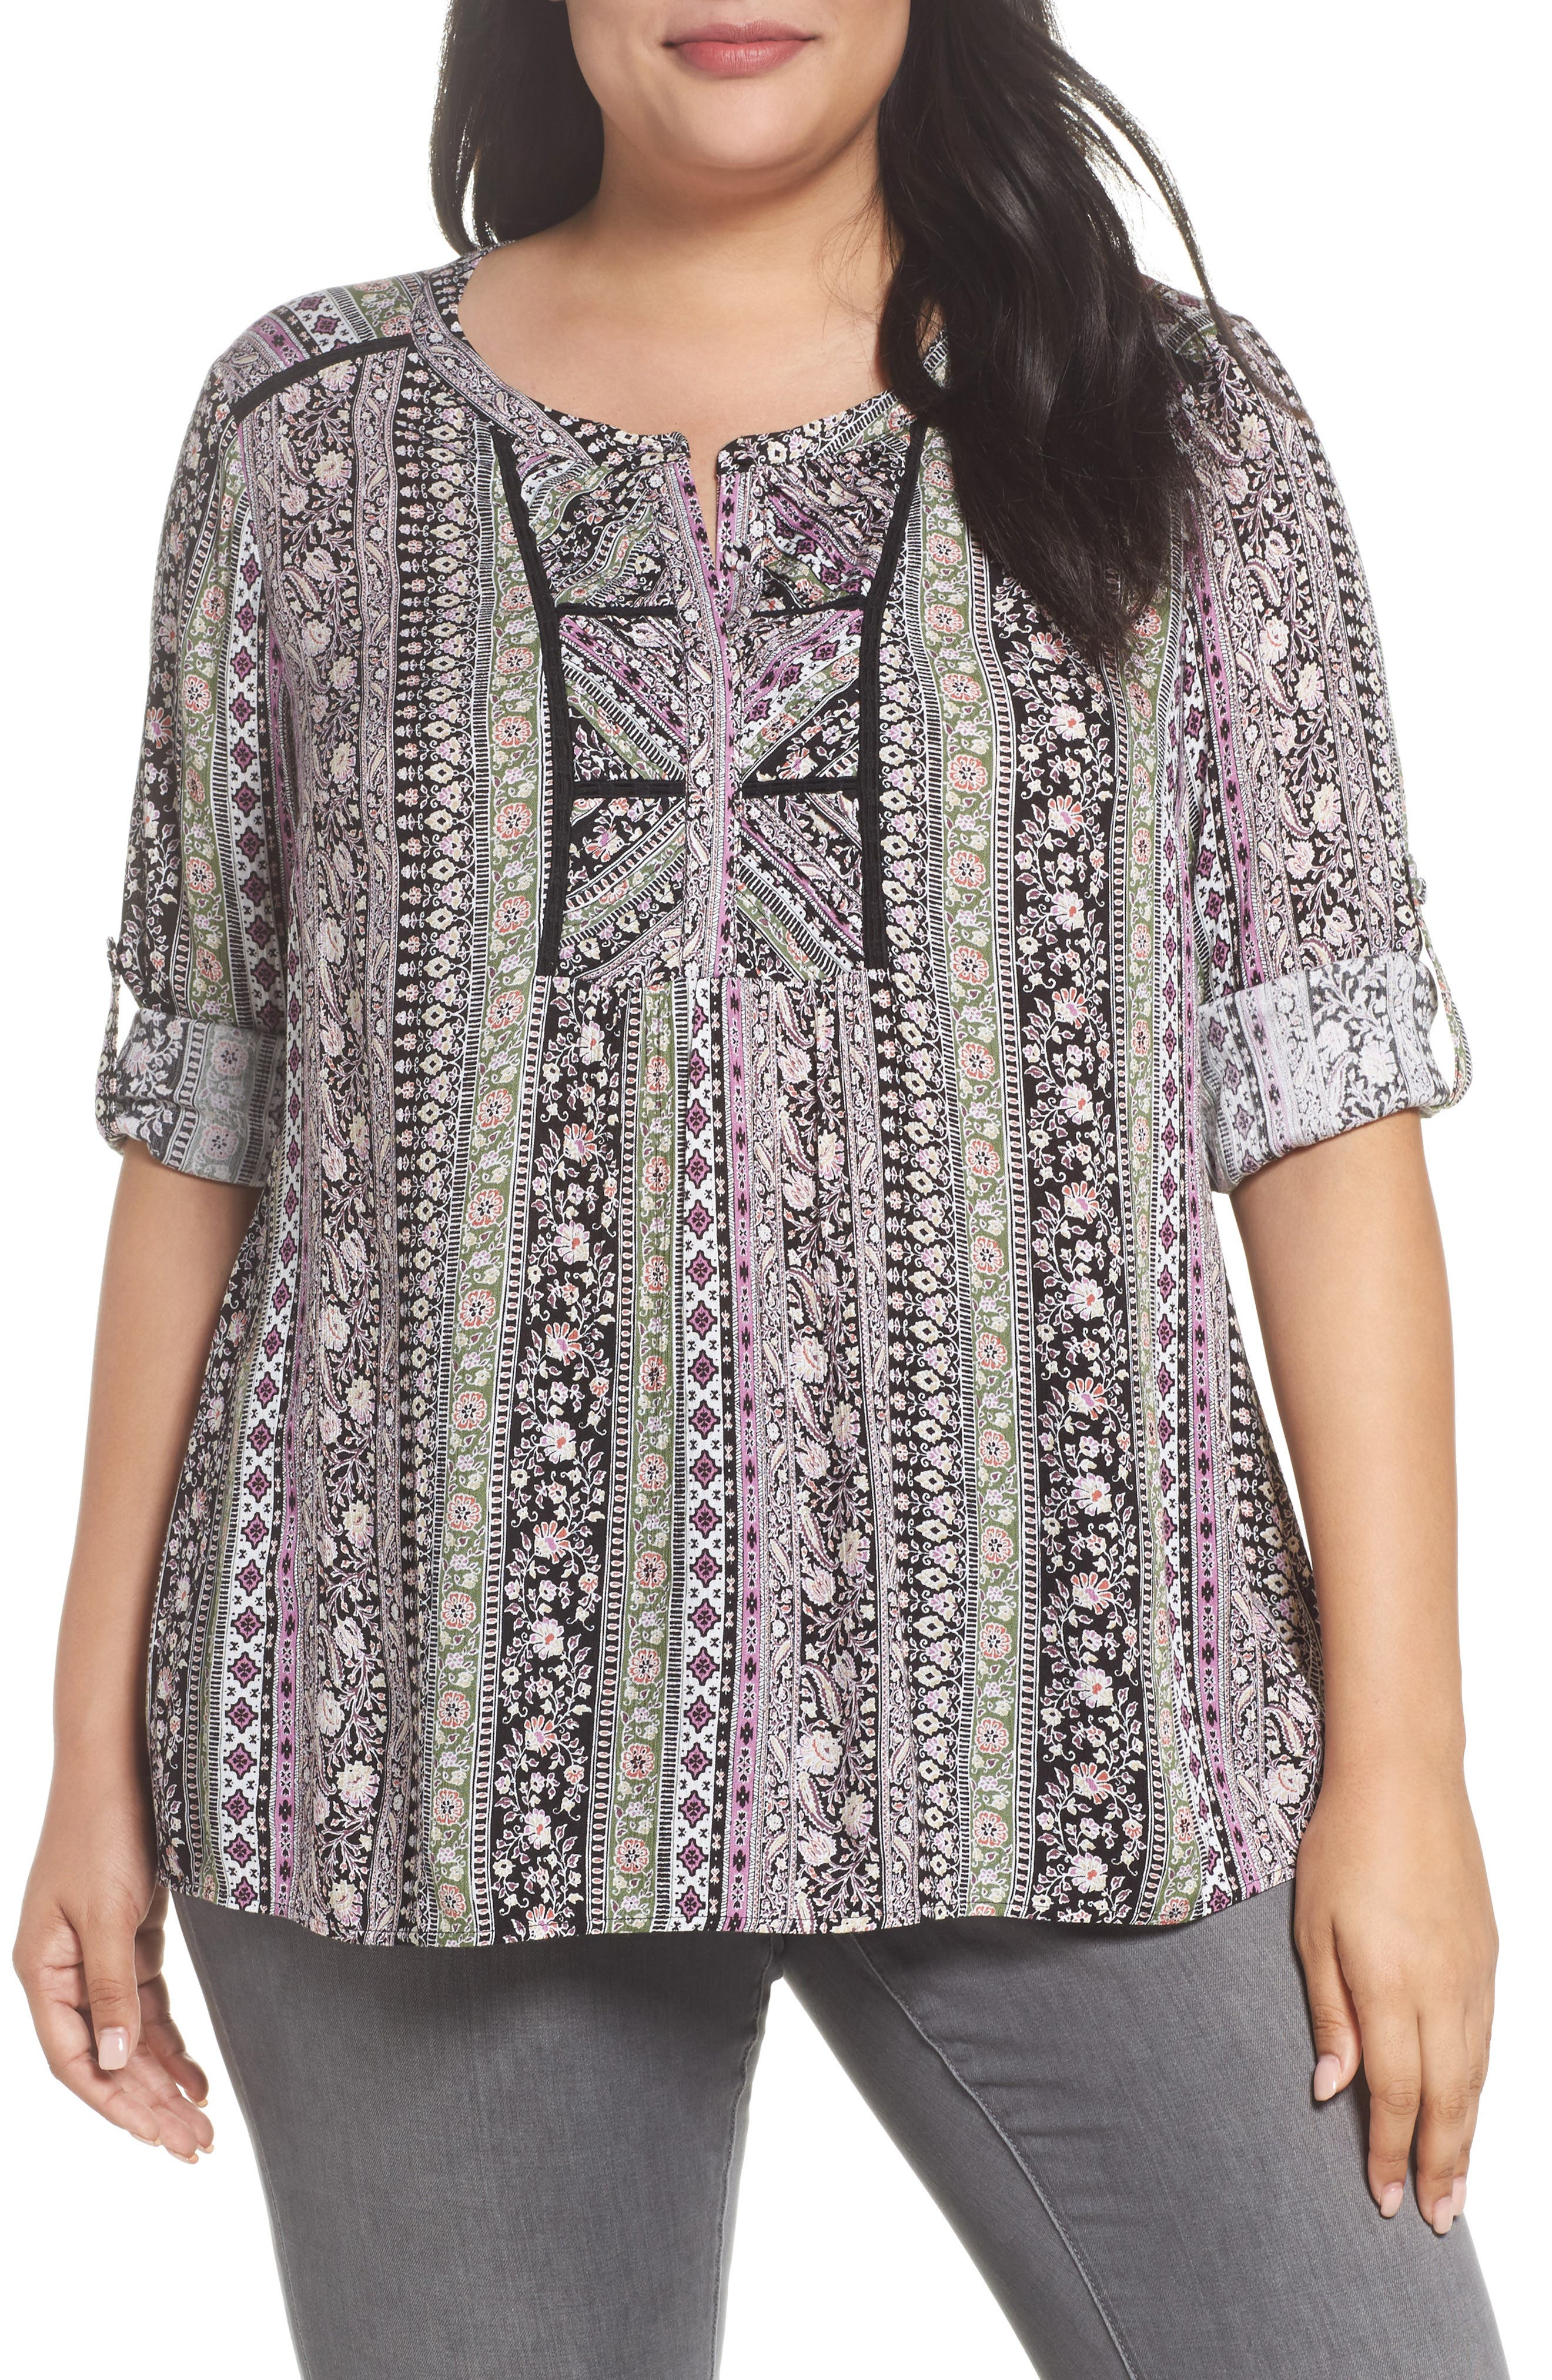 Alternate Image 1 Selected - Daniel Rainn Embroidered Trim Floral Stripe Top (Plus Size)